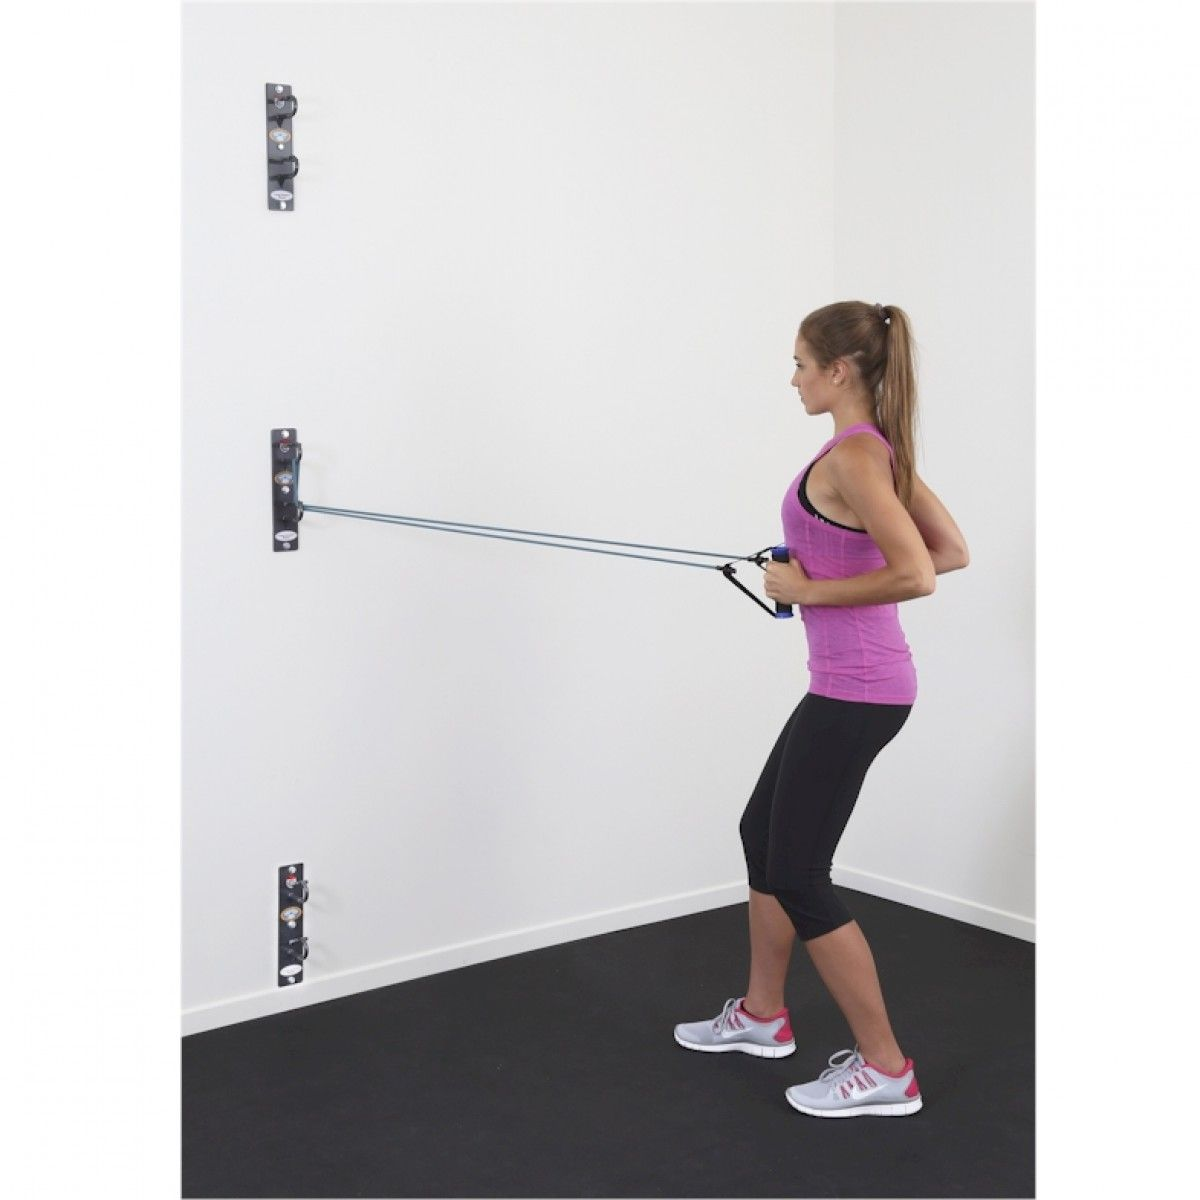 Anchor gym for resistance bands workout room home gym